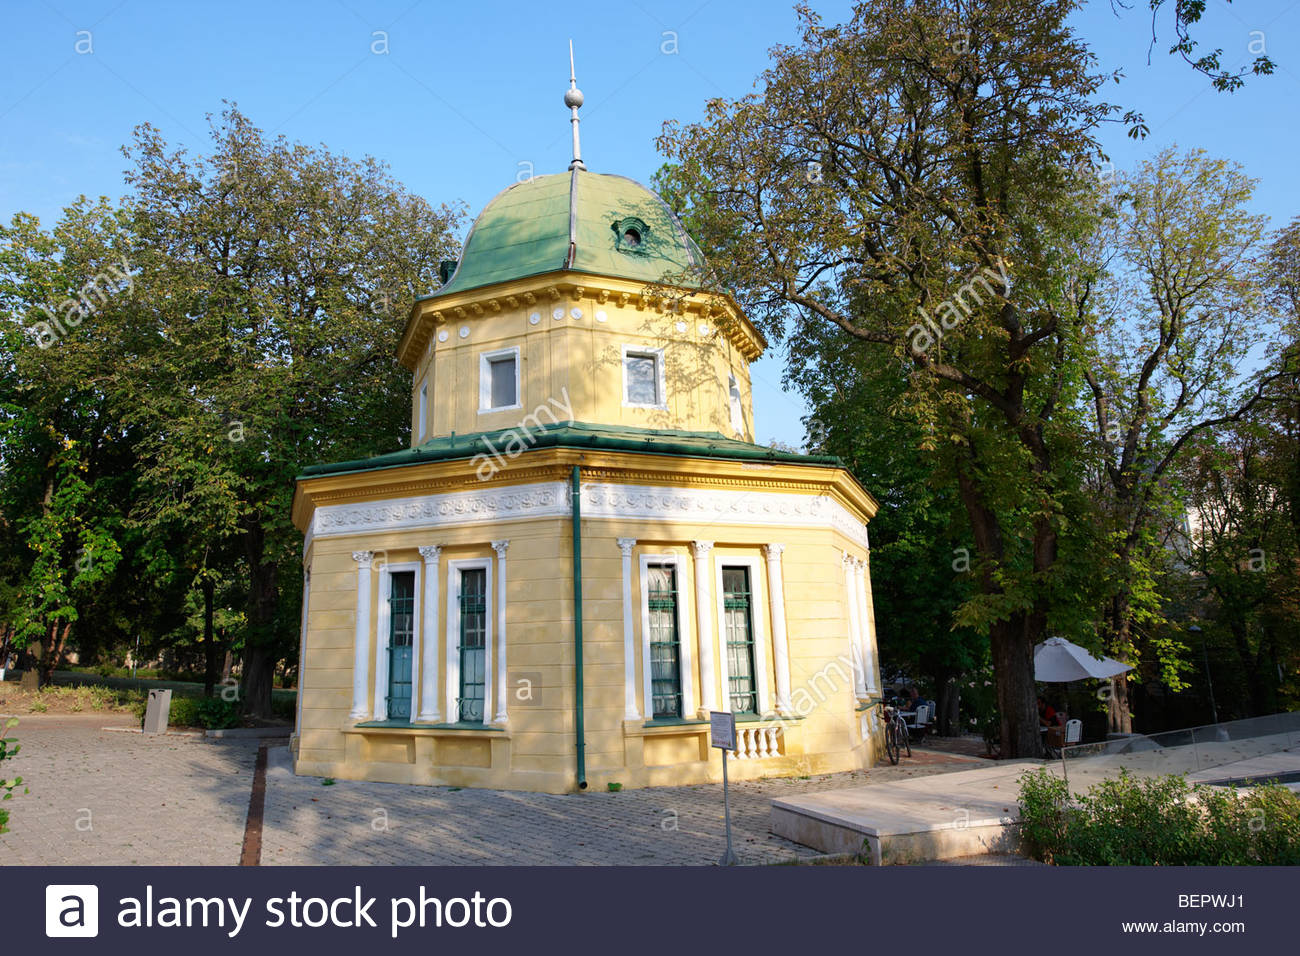 Pavillion in the park - Pecs - European Cultural City of The Year 2010 , Hungary - Stock Image